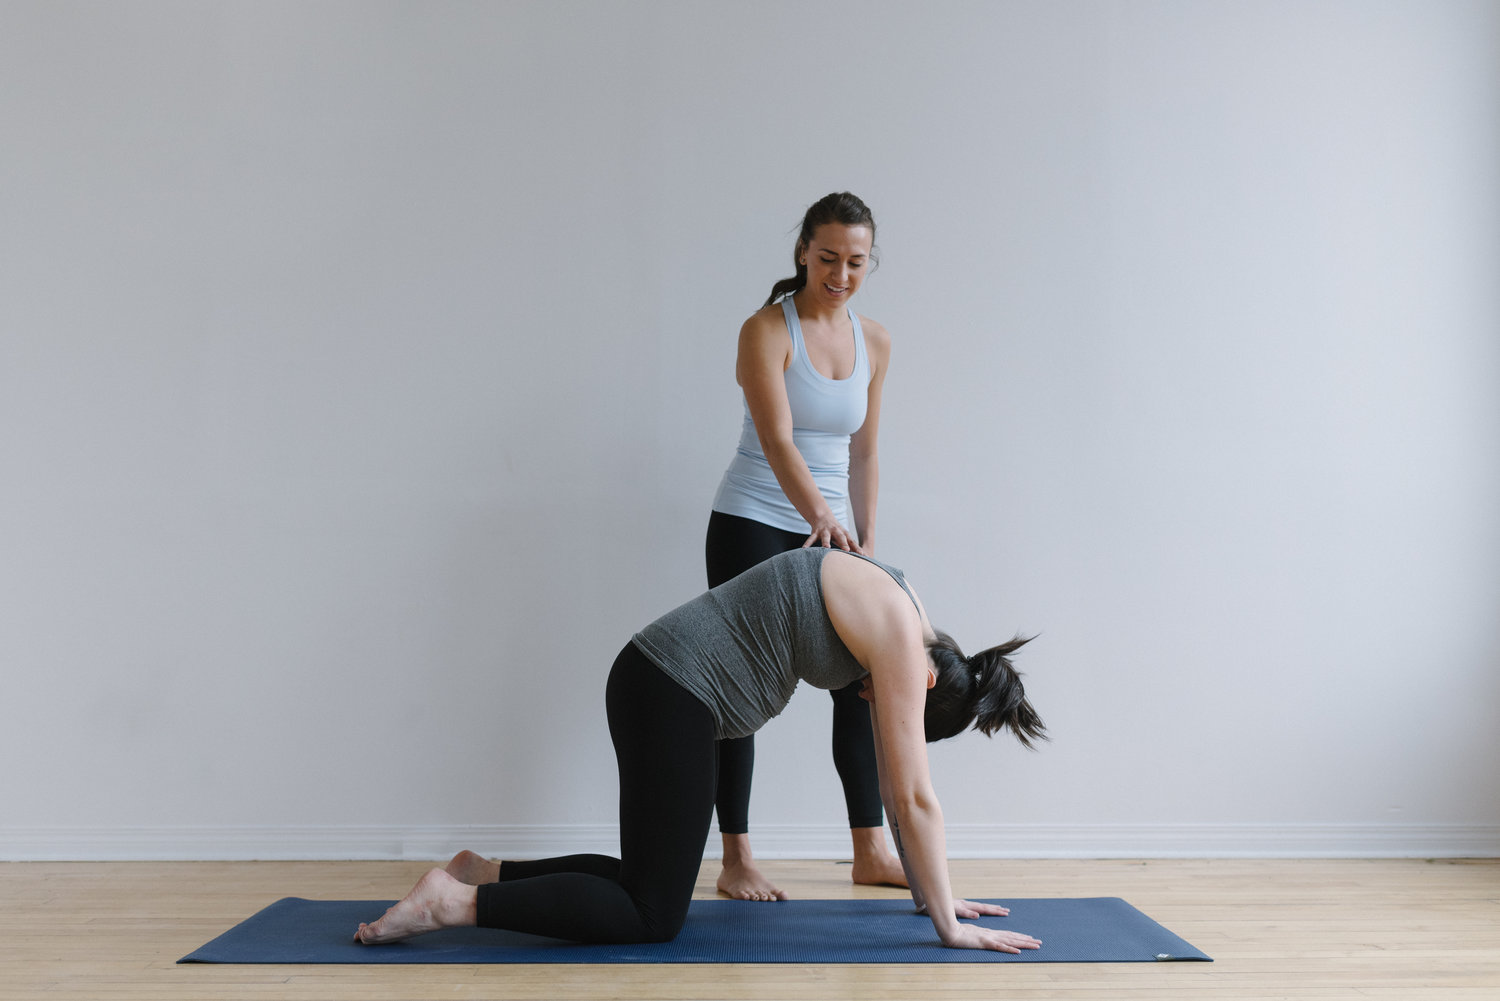 Prenatal+yoga+poses+for+every+trimester+_+Sam+D+Squire (6).jpeg